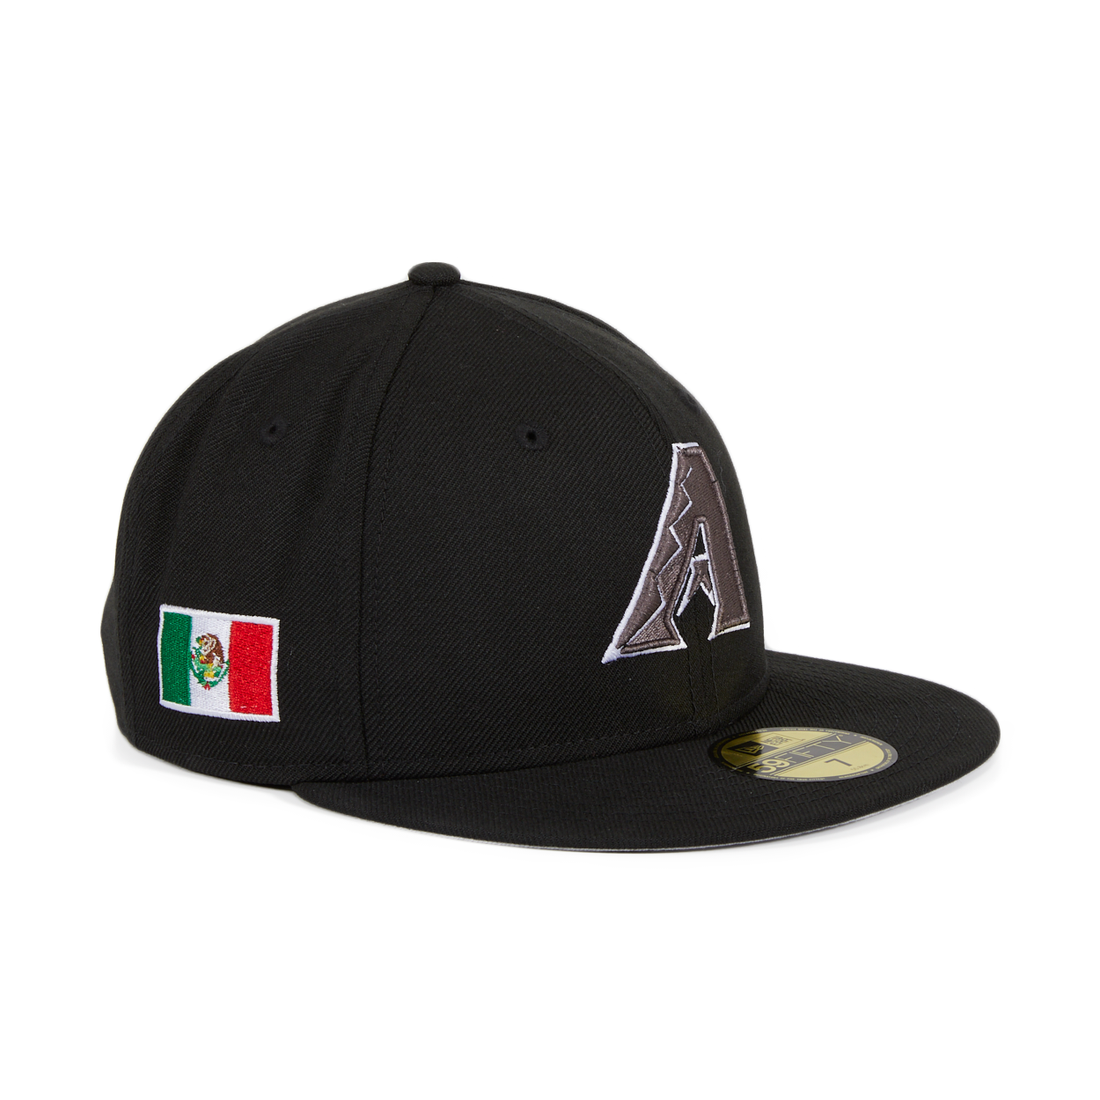 Exclusive New Era 59Fifty Diamondbacks Mexico Flag Hat -Black ... b72c83fa95fa